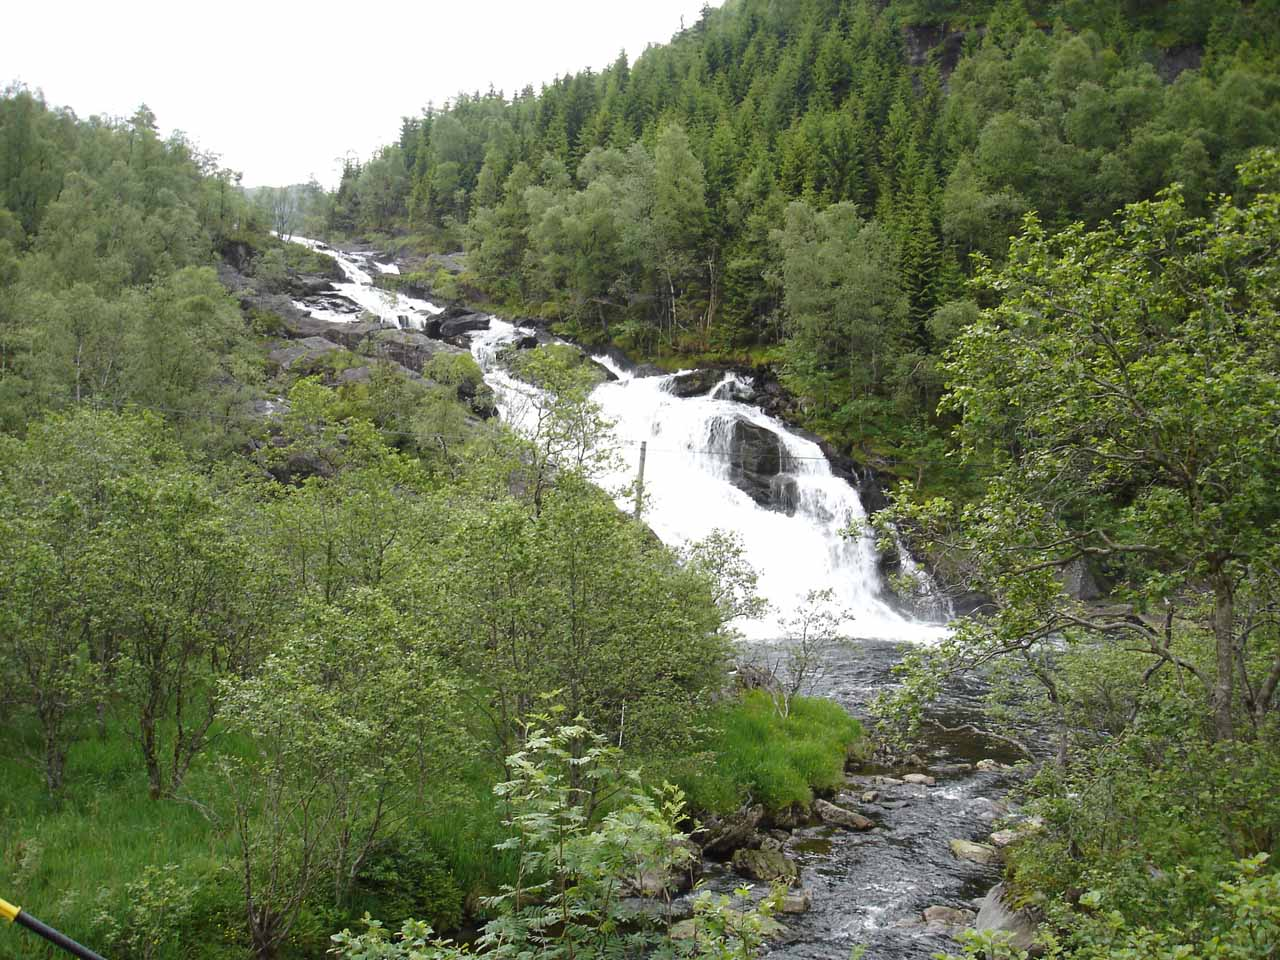 This was the waterfall whose name we didn't know that was 3km west of Fossen Bratte seen along the Fv7